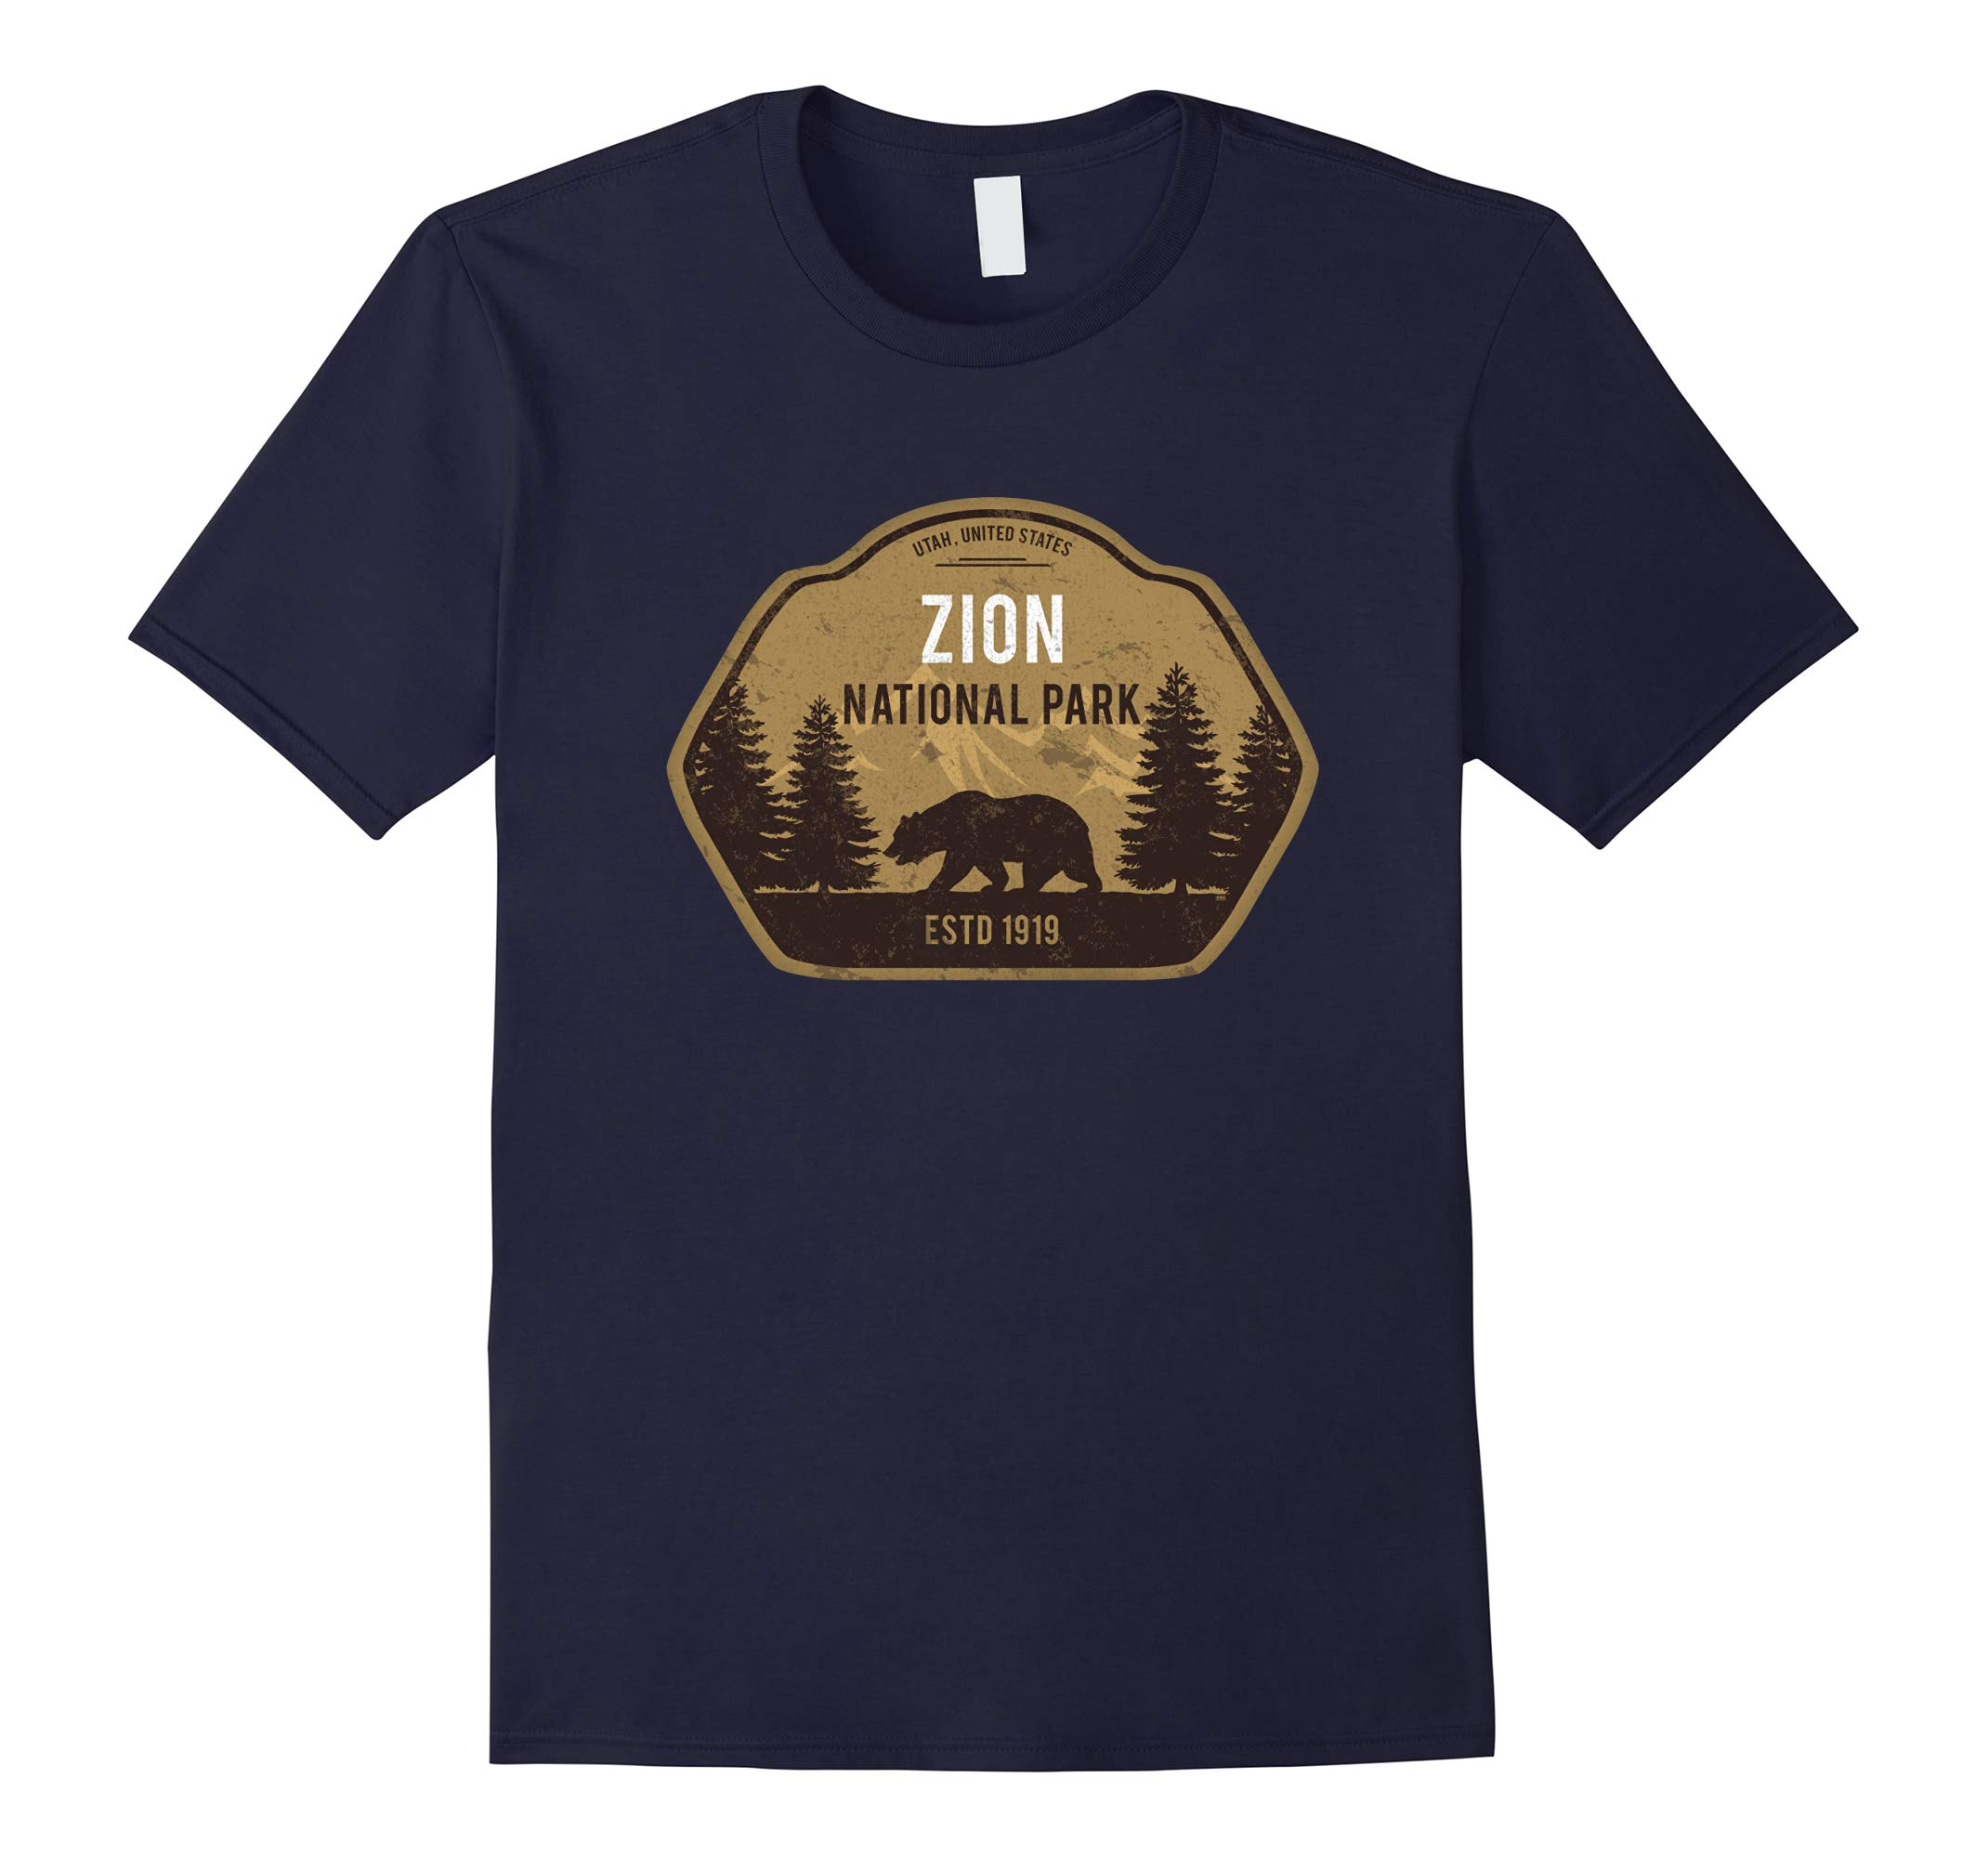 Zion National Park Utah T-Shirt Vintage Tee-RT